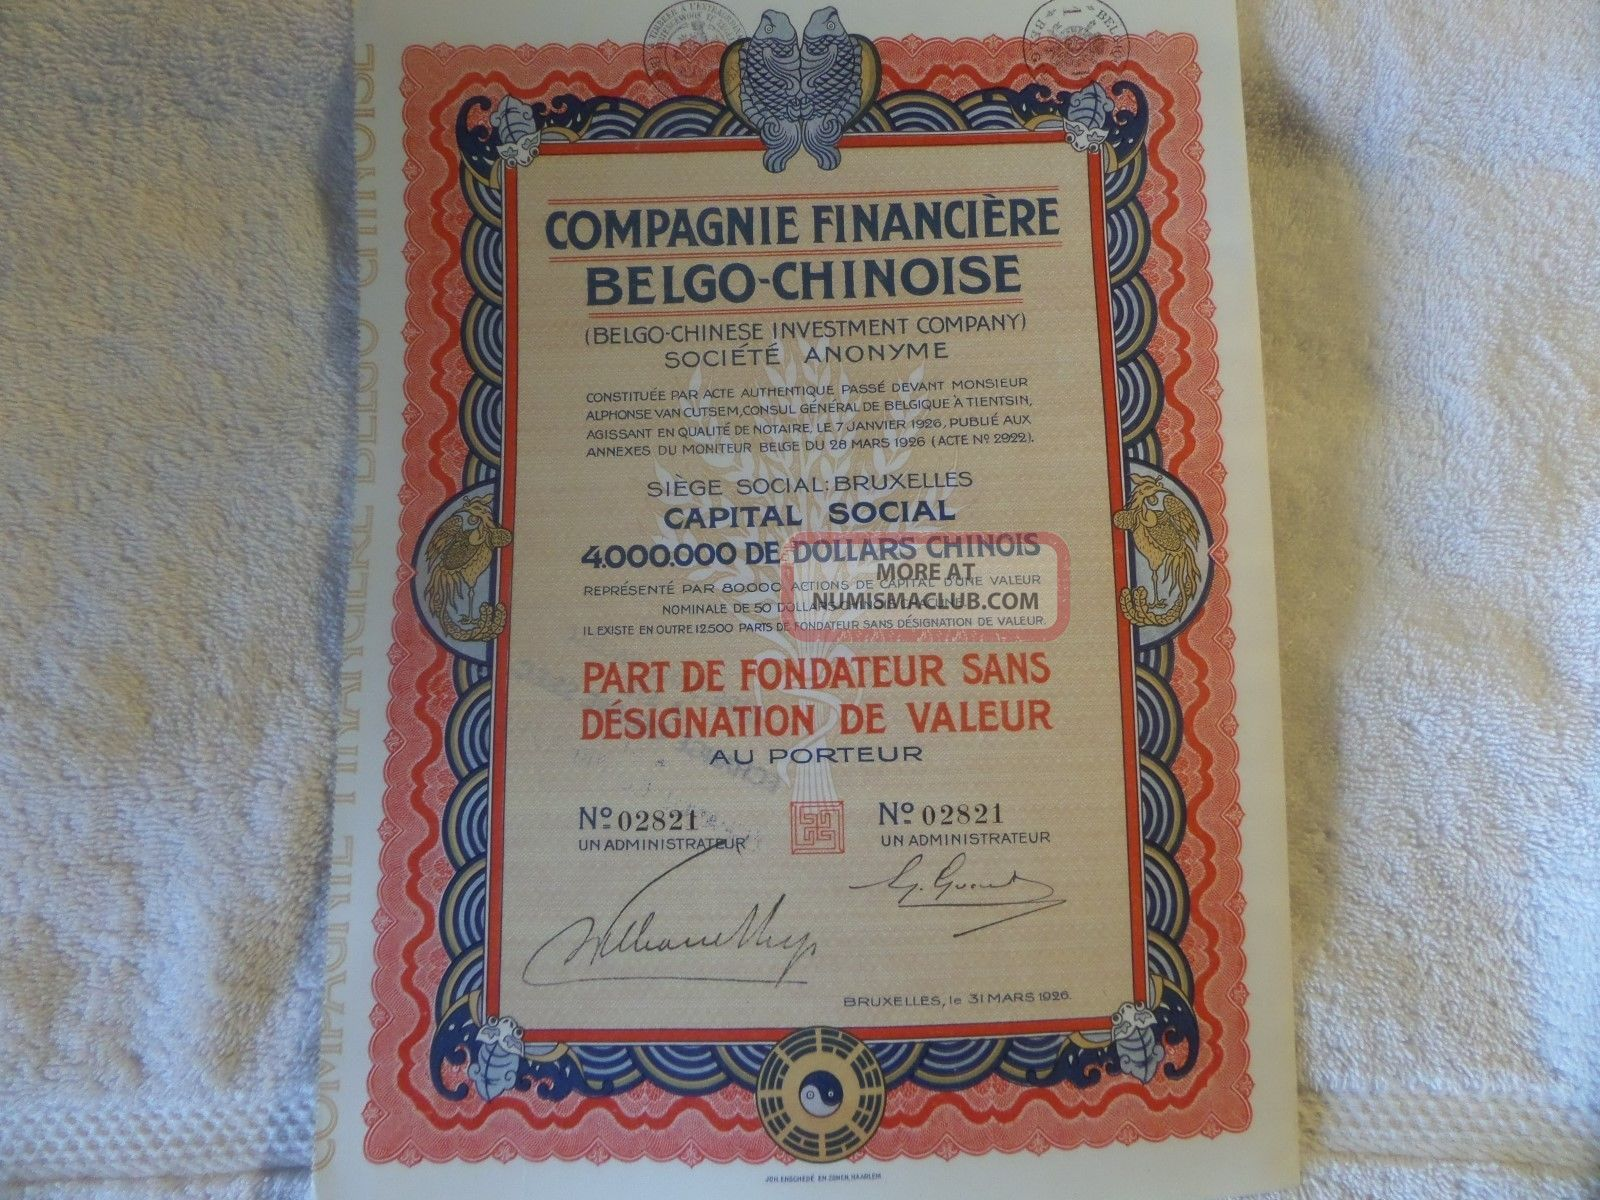 Antique Certificate With Coupons Compagnie Financiere Belgo - Chinoise 1926 French World photo